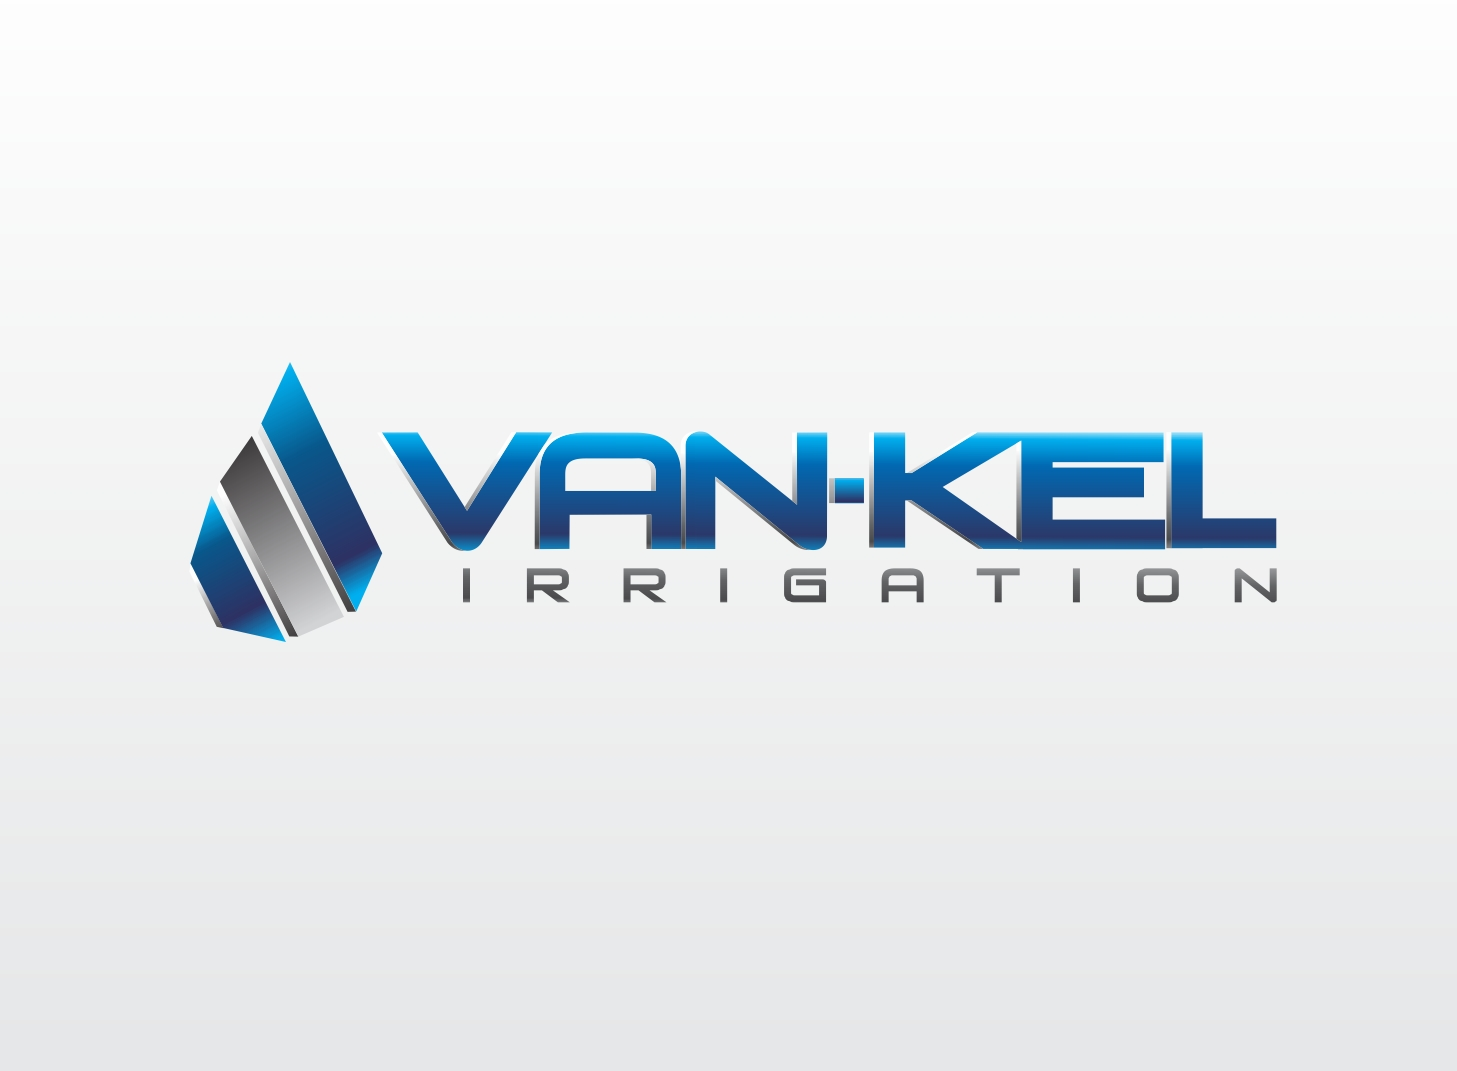 Logo Design by Zdravko Krulj - Entry No. 99 in the Logo Design Contest Van-Kel Irrigation Logo Design.